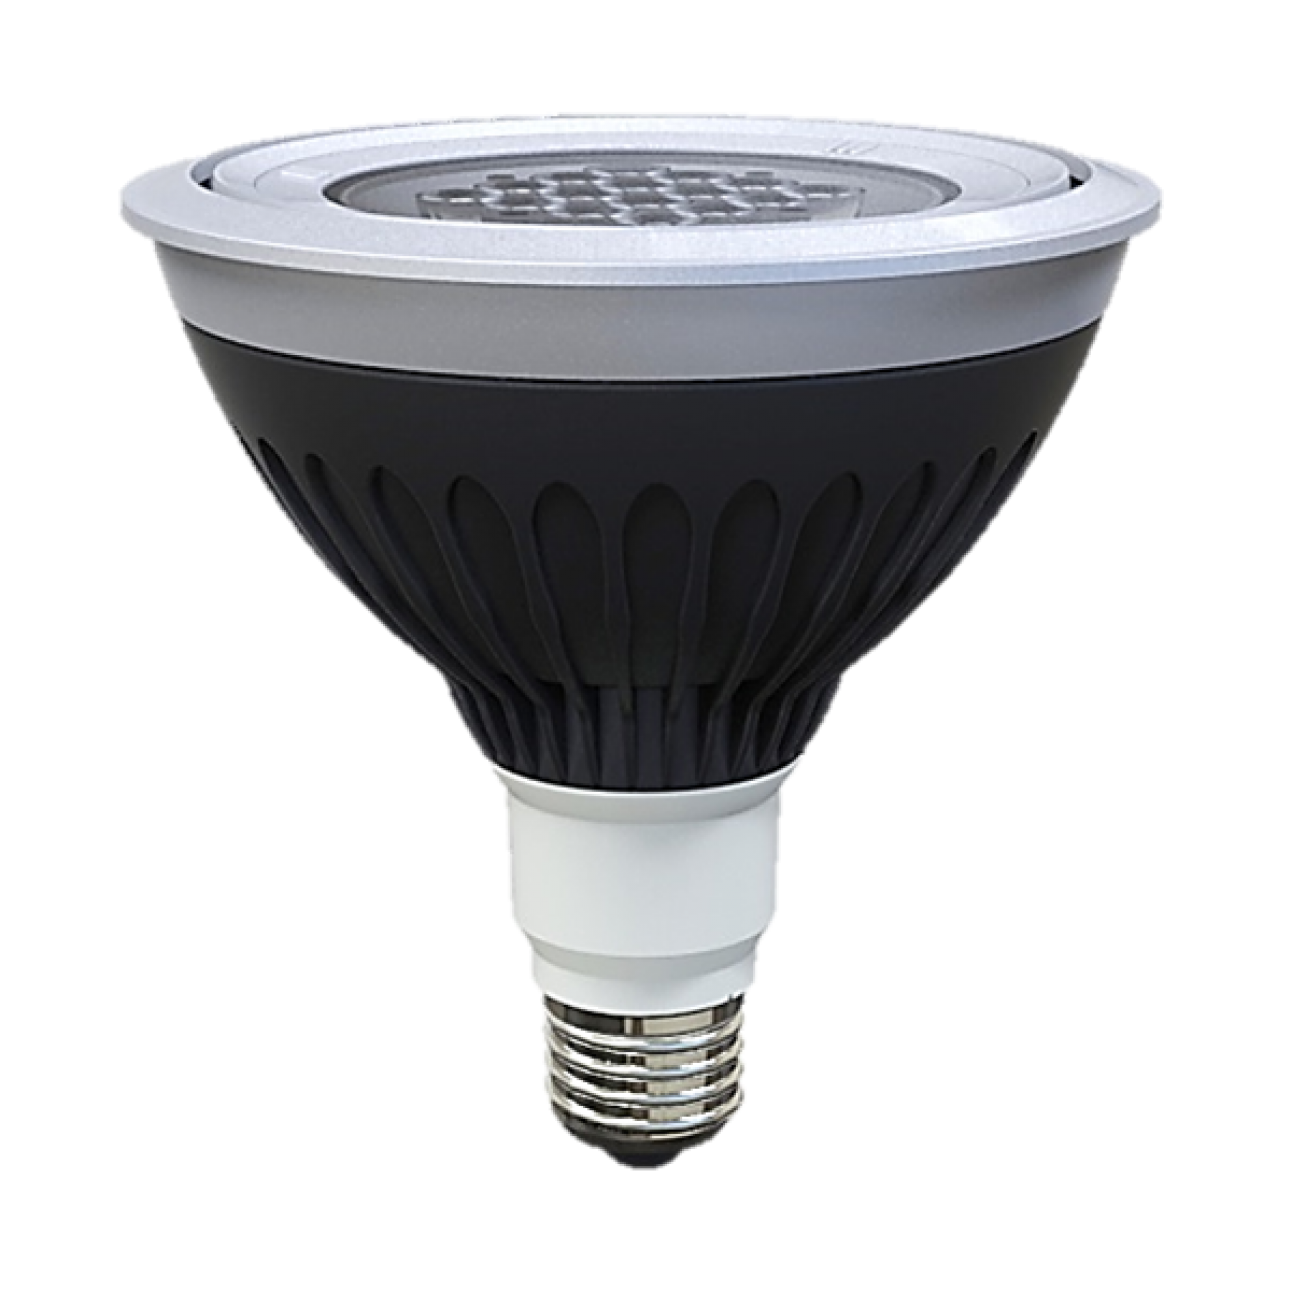 PAR38 LED Commercial Light Bulb